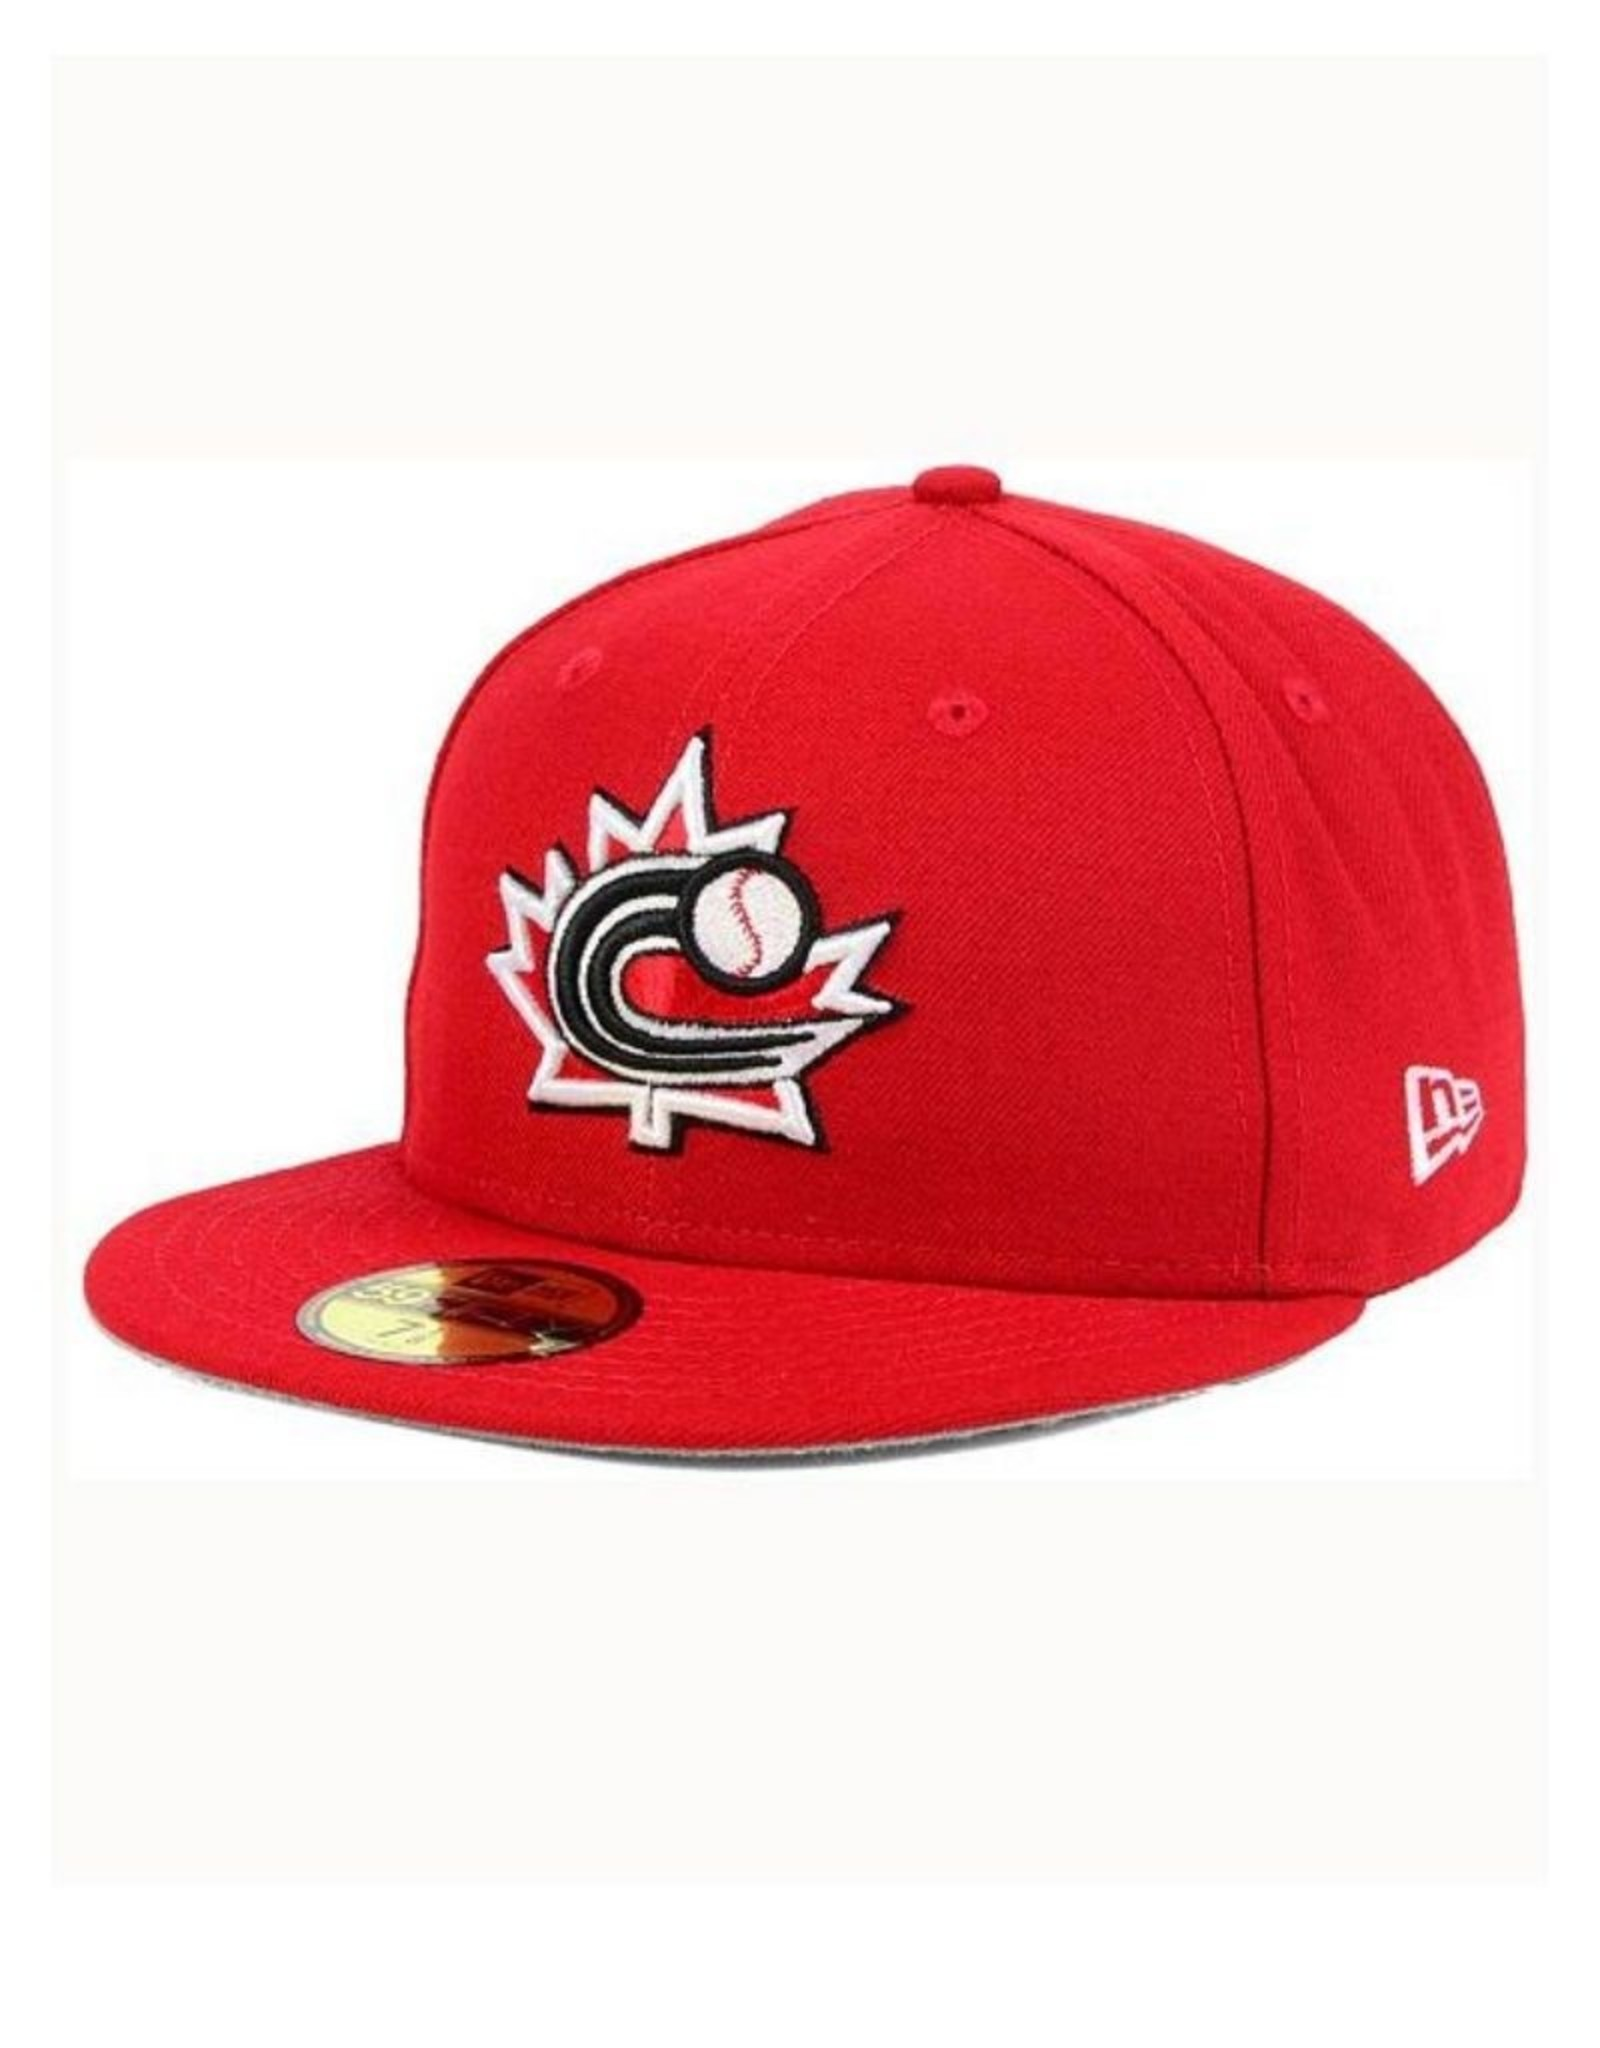 New Era On-Field Authentic 59FIFTY Hat Canada Baseball Red